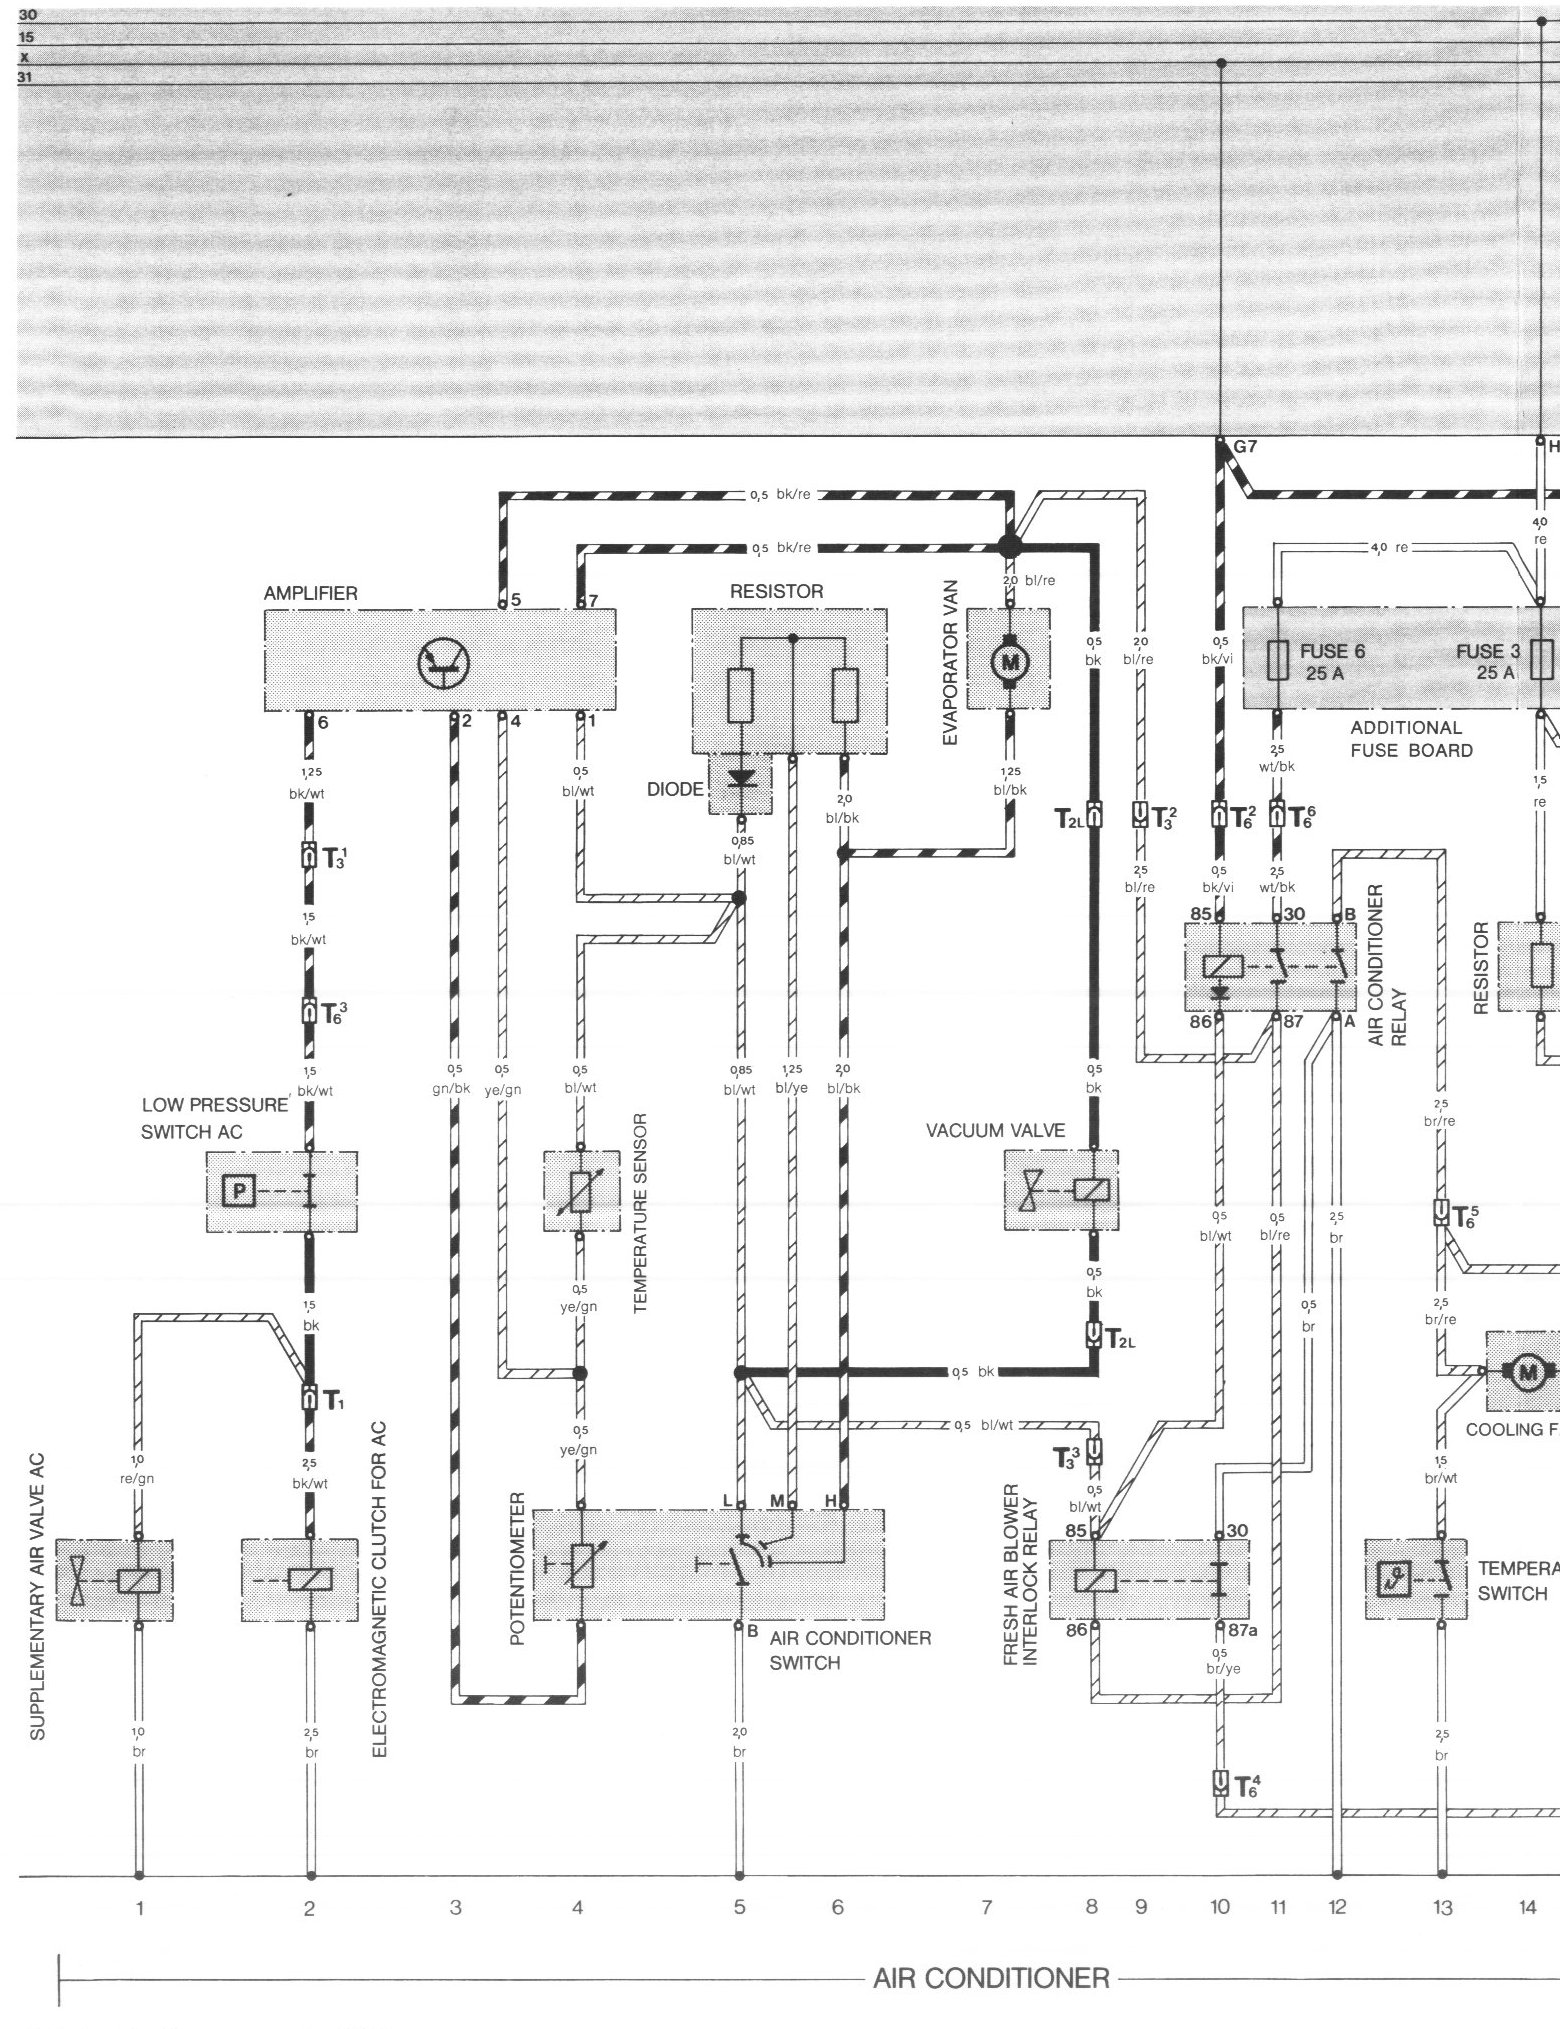 944_84_AC_1 pelican parts porsche 924 944 electrical diagrams porsche 944 wiring diagram at virtualis.co